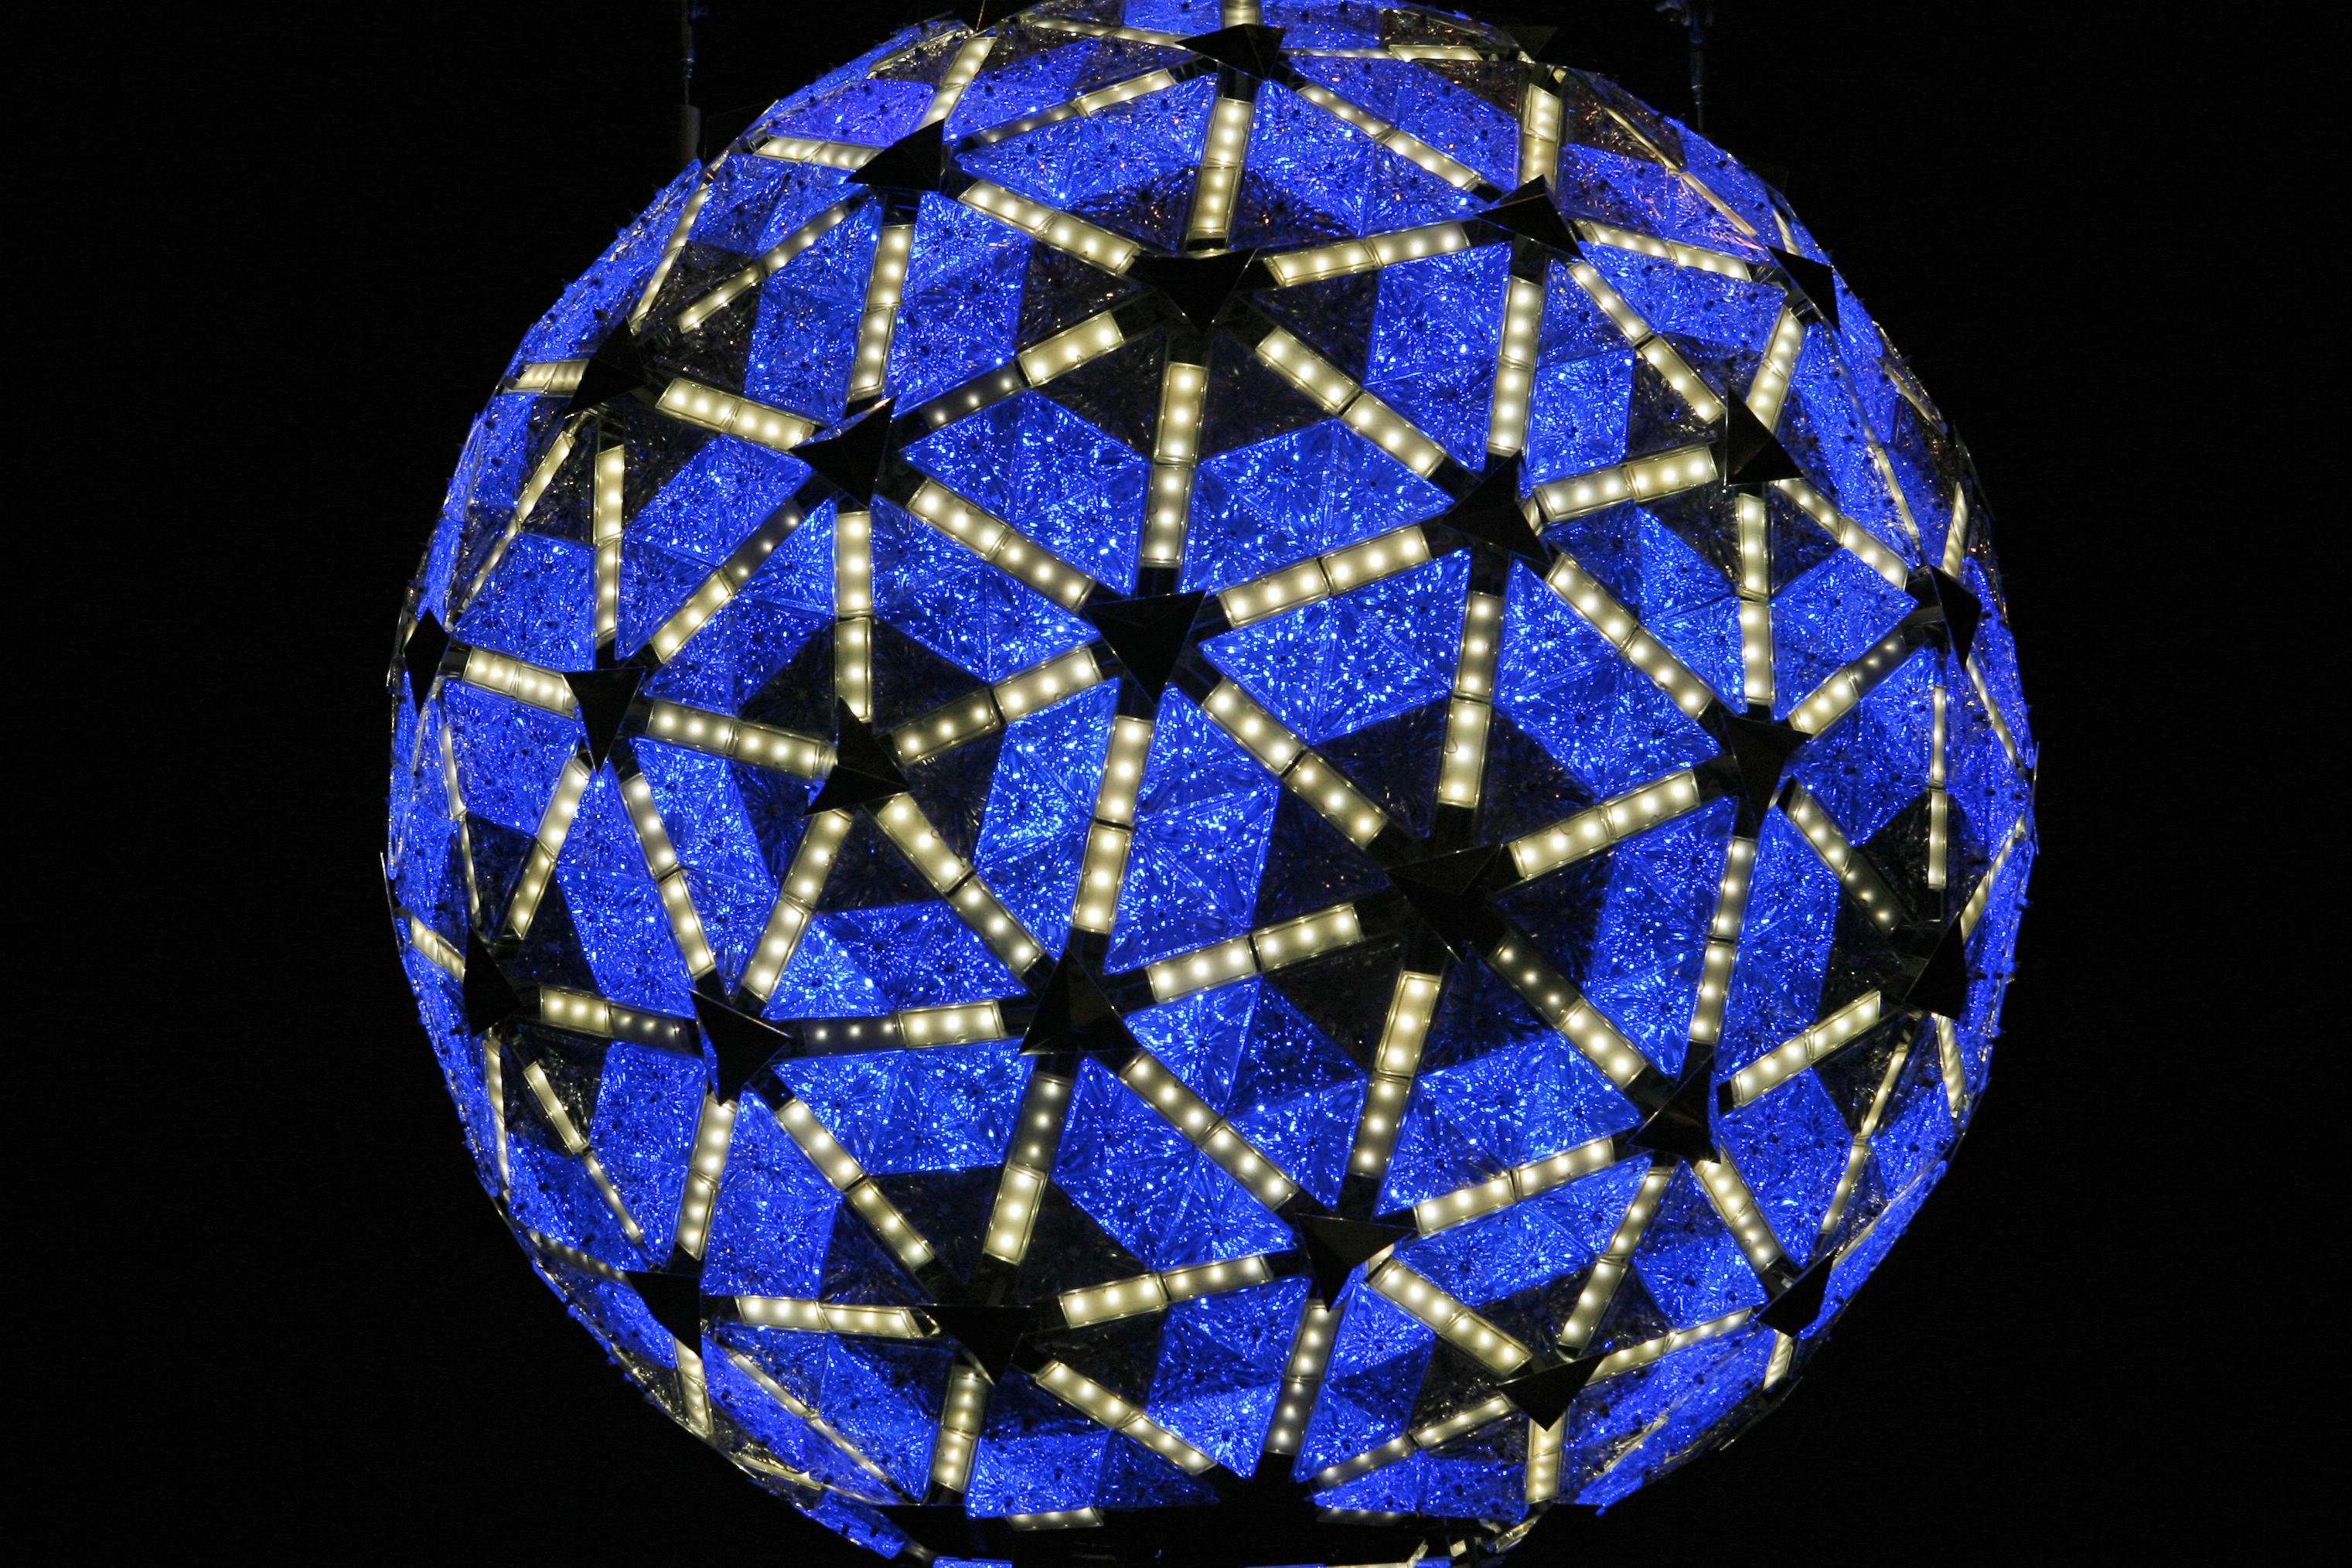 A new ball was built for the 100th anniversary of the ball drop in 2007 -- twice as bright as its predecessor and color-enabled with LED technology.